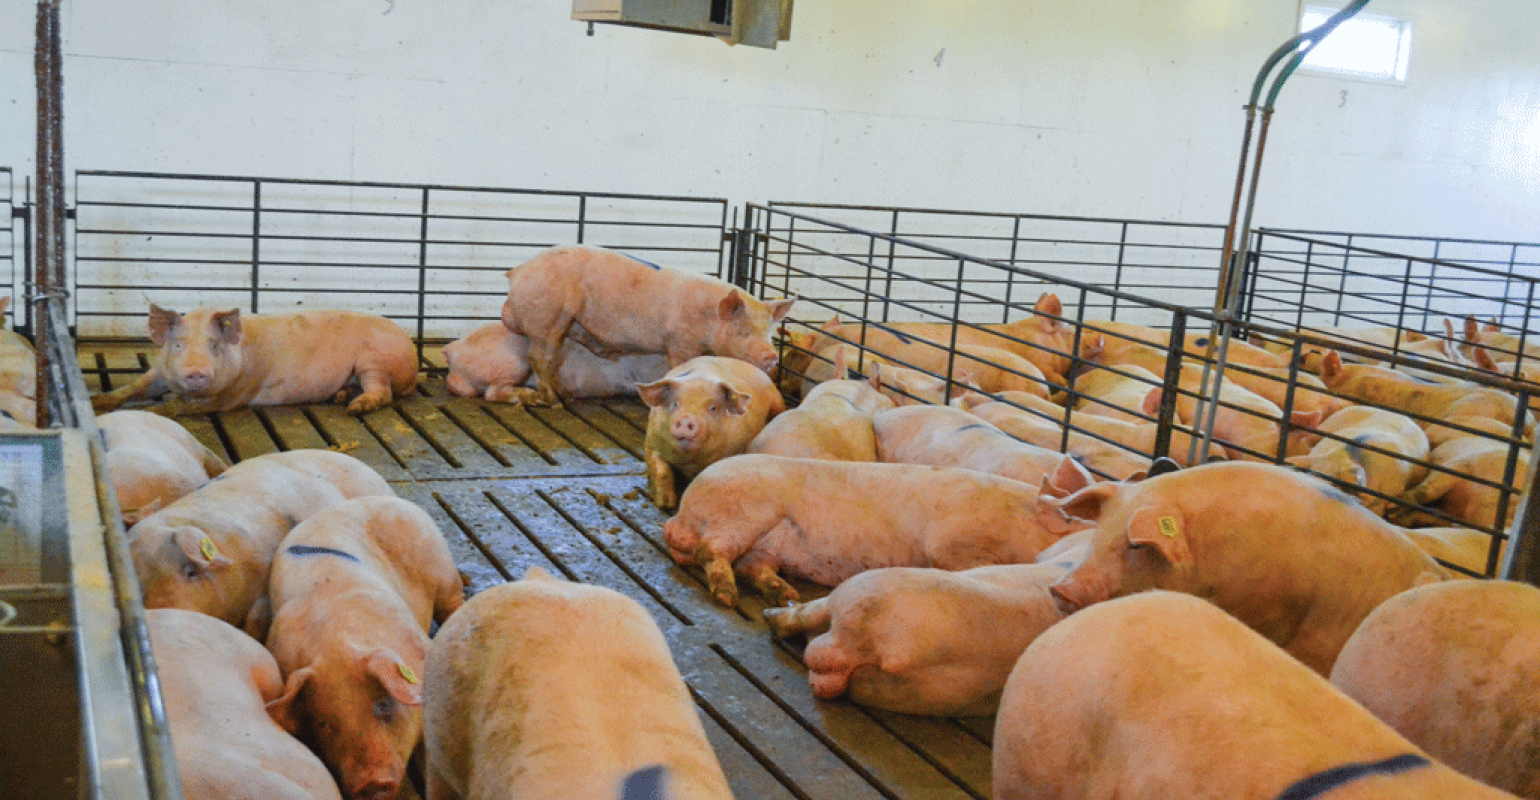 Male pigs grow faster, more efficiently with alternative